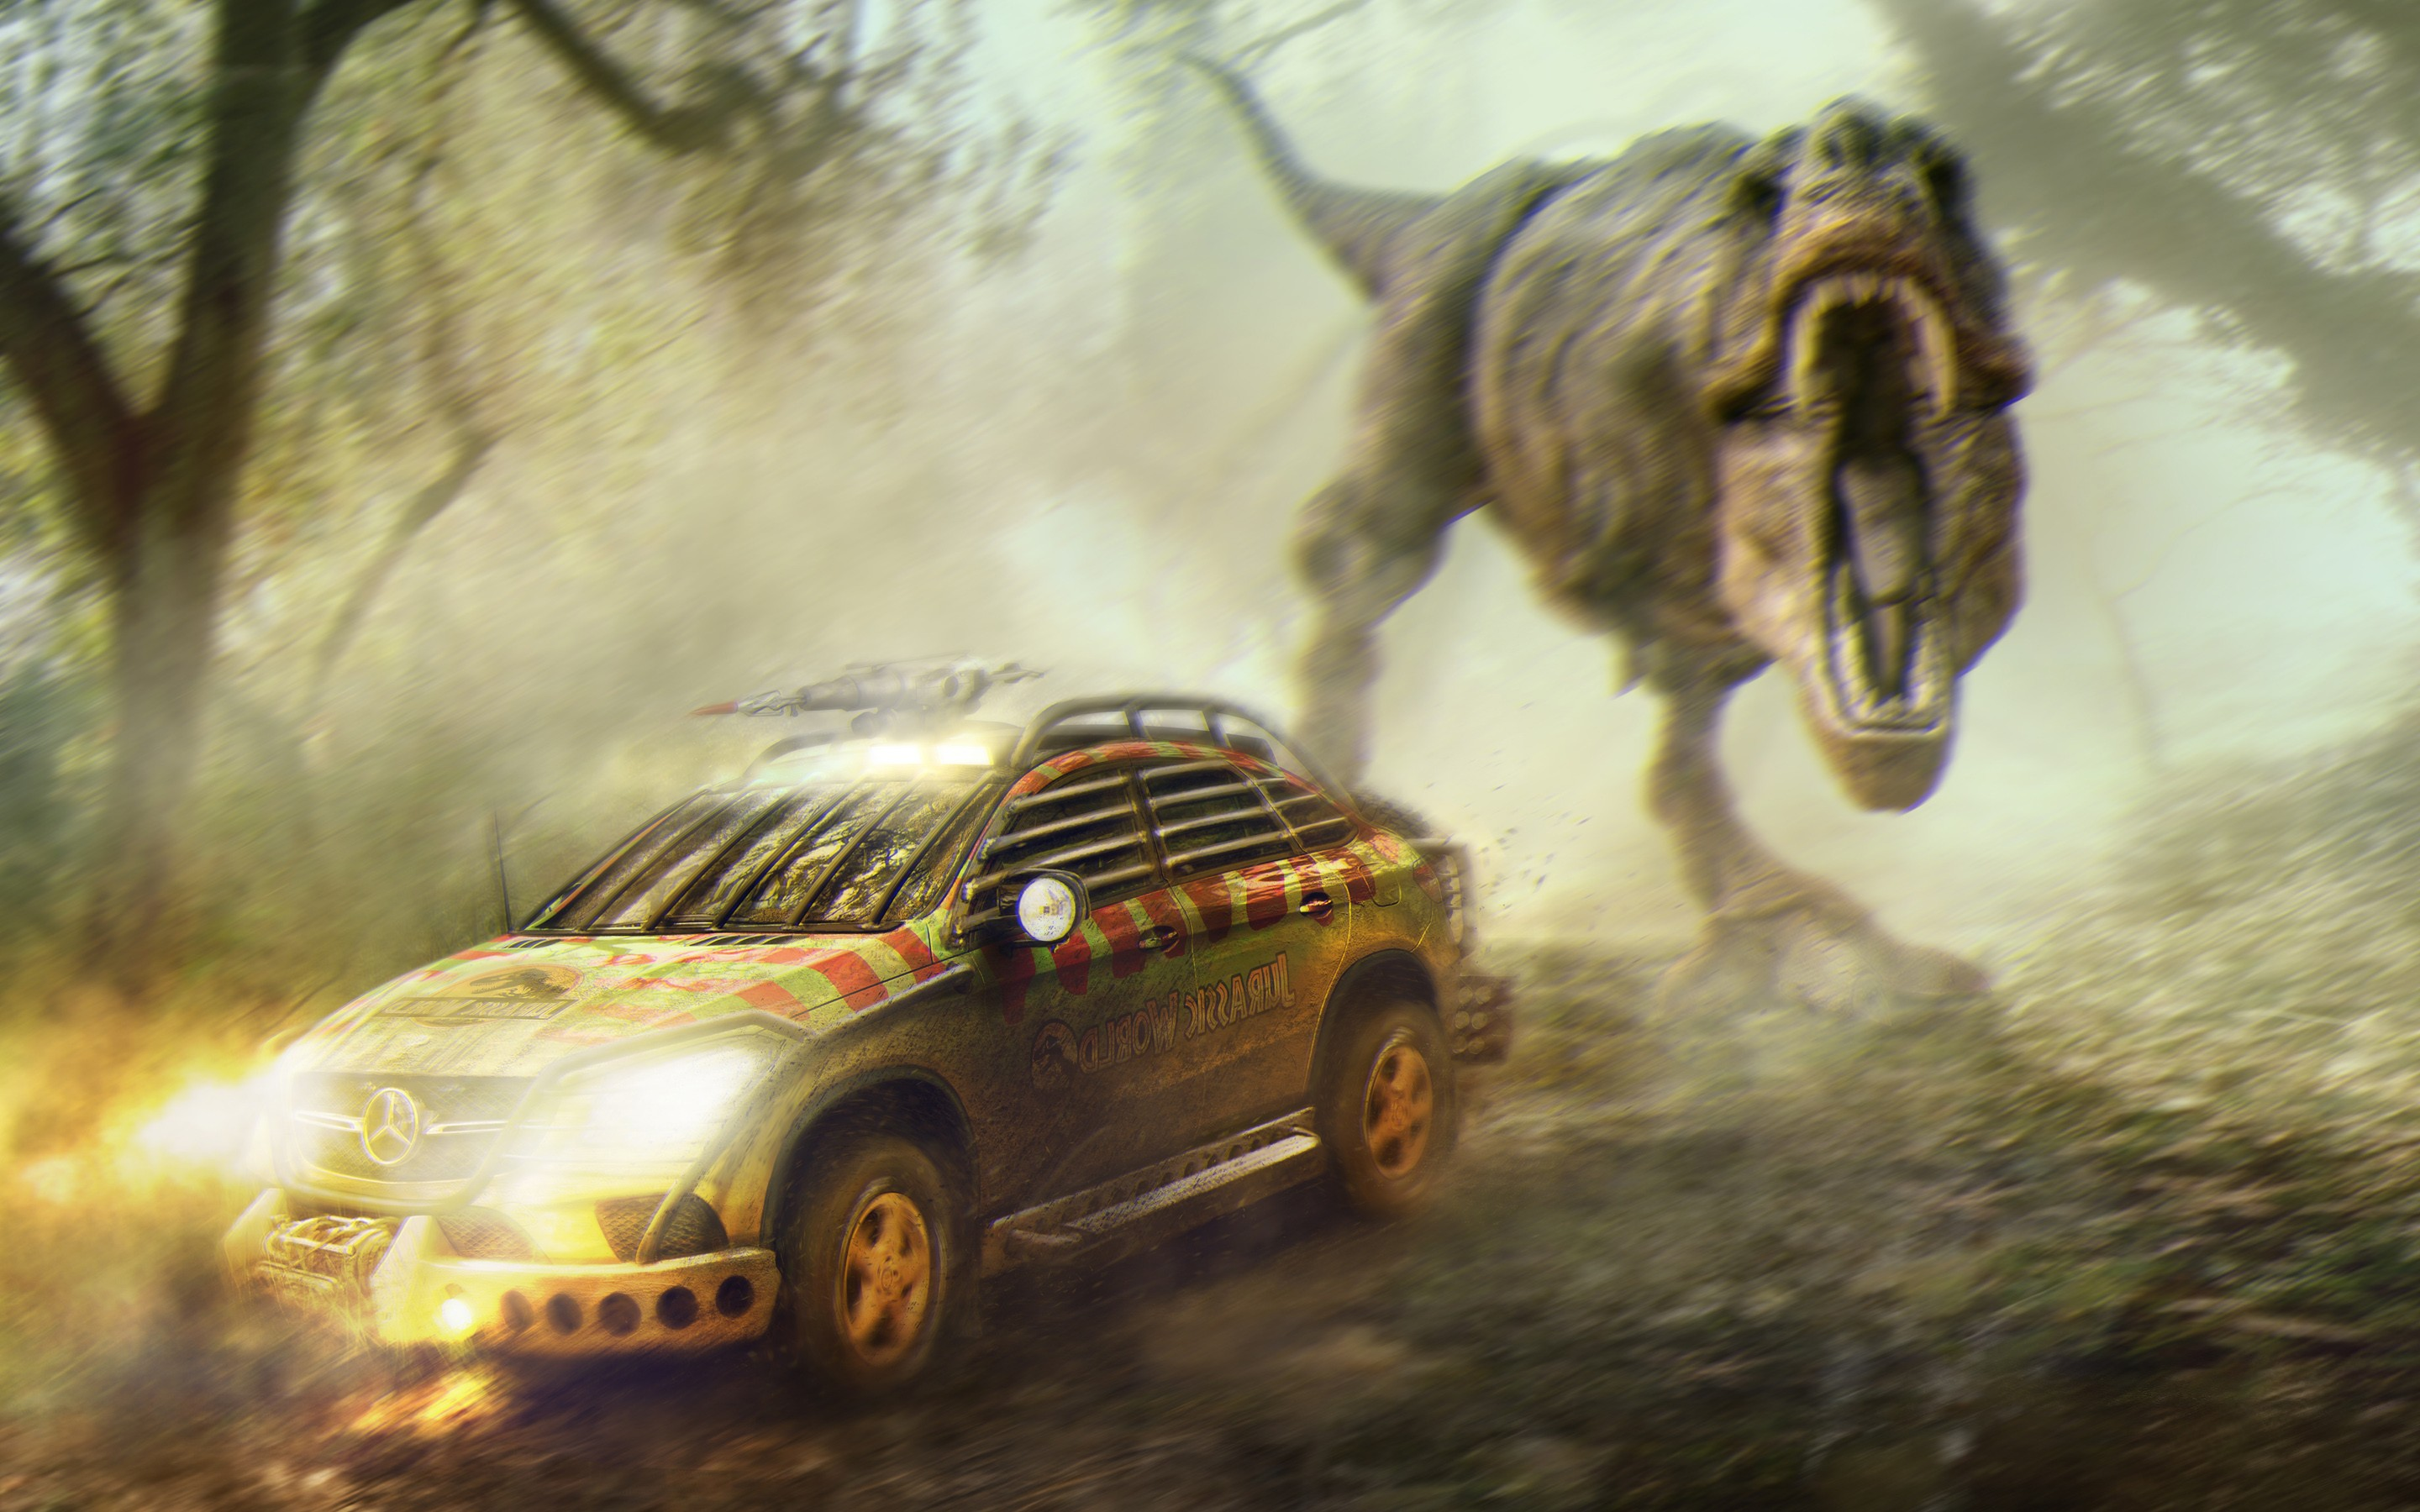 Jurassic World Mercedes Benz